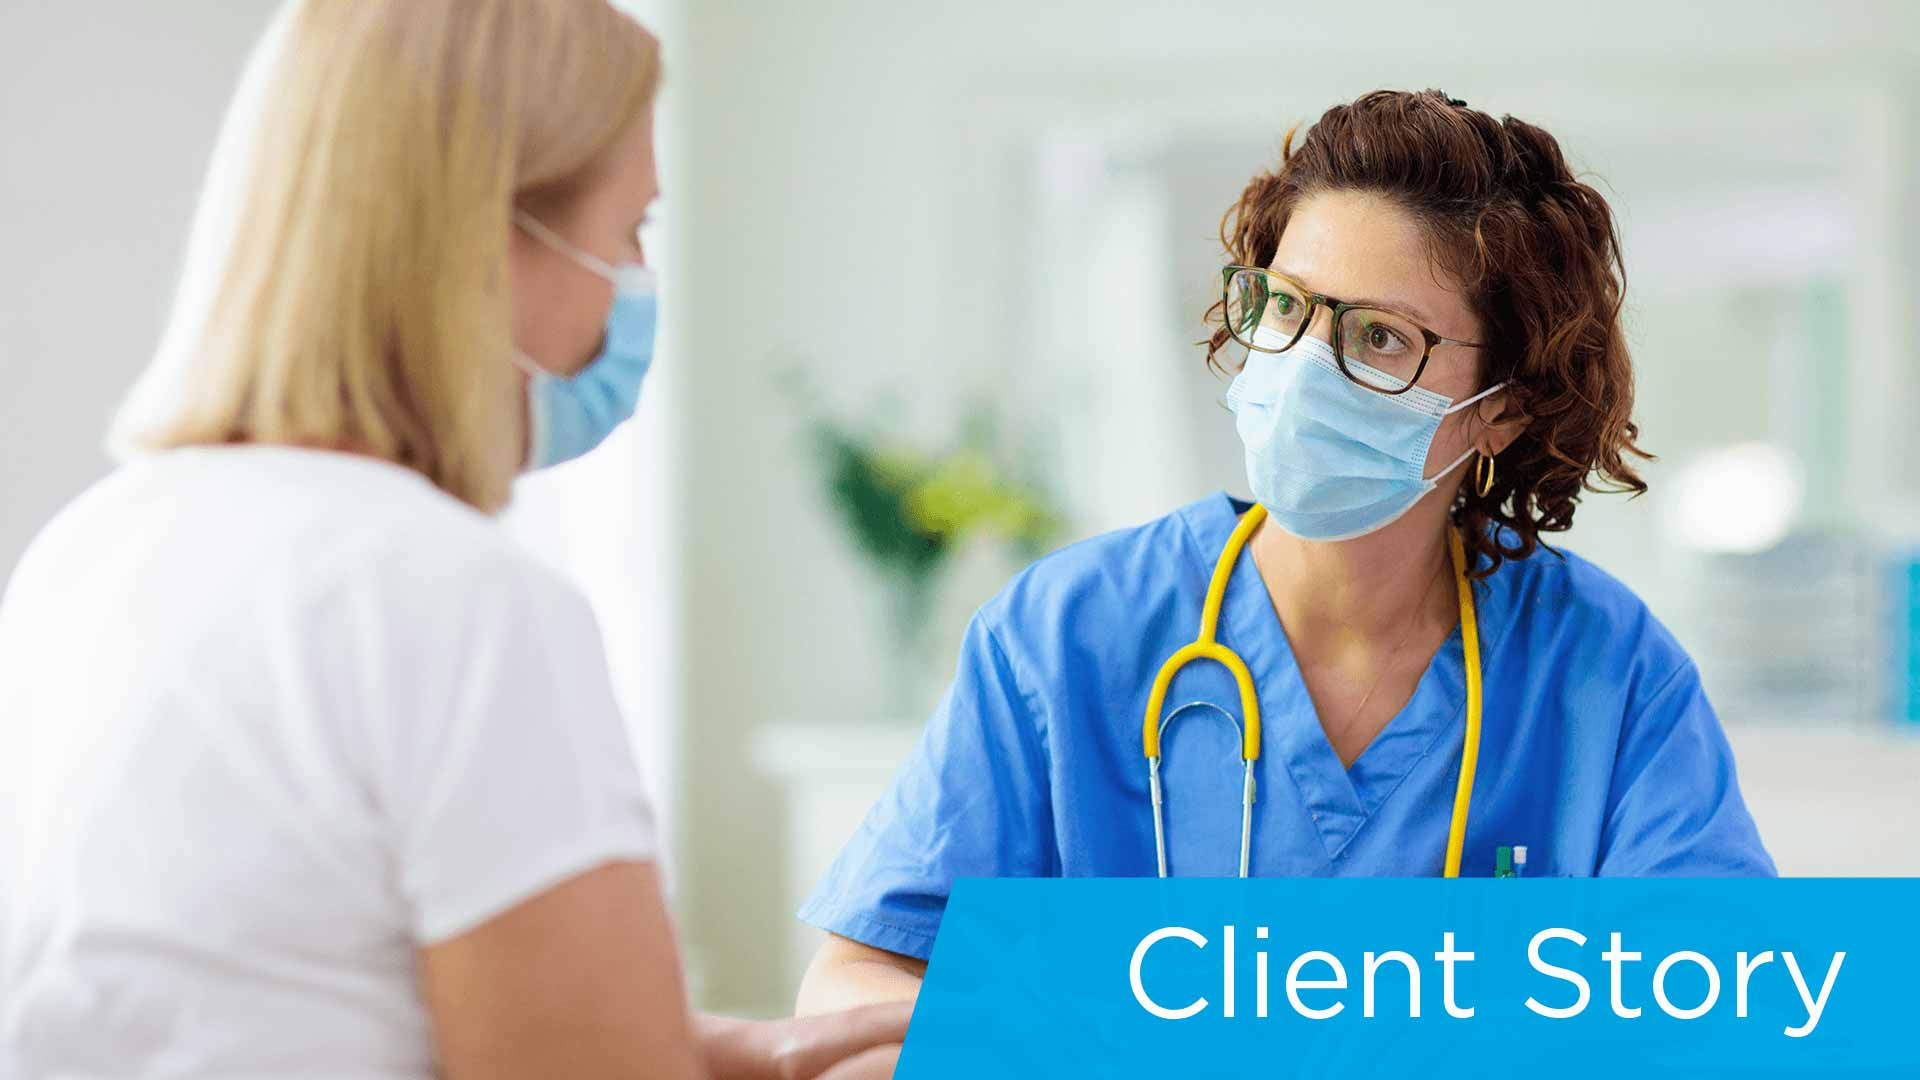 Client Story_St Joseph_doctor with patient wearing masks